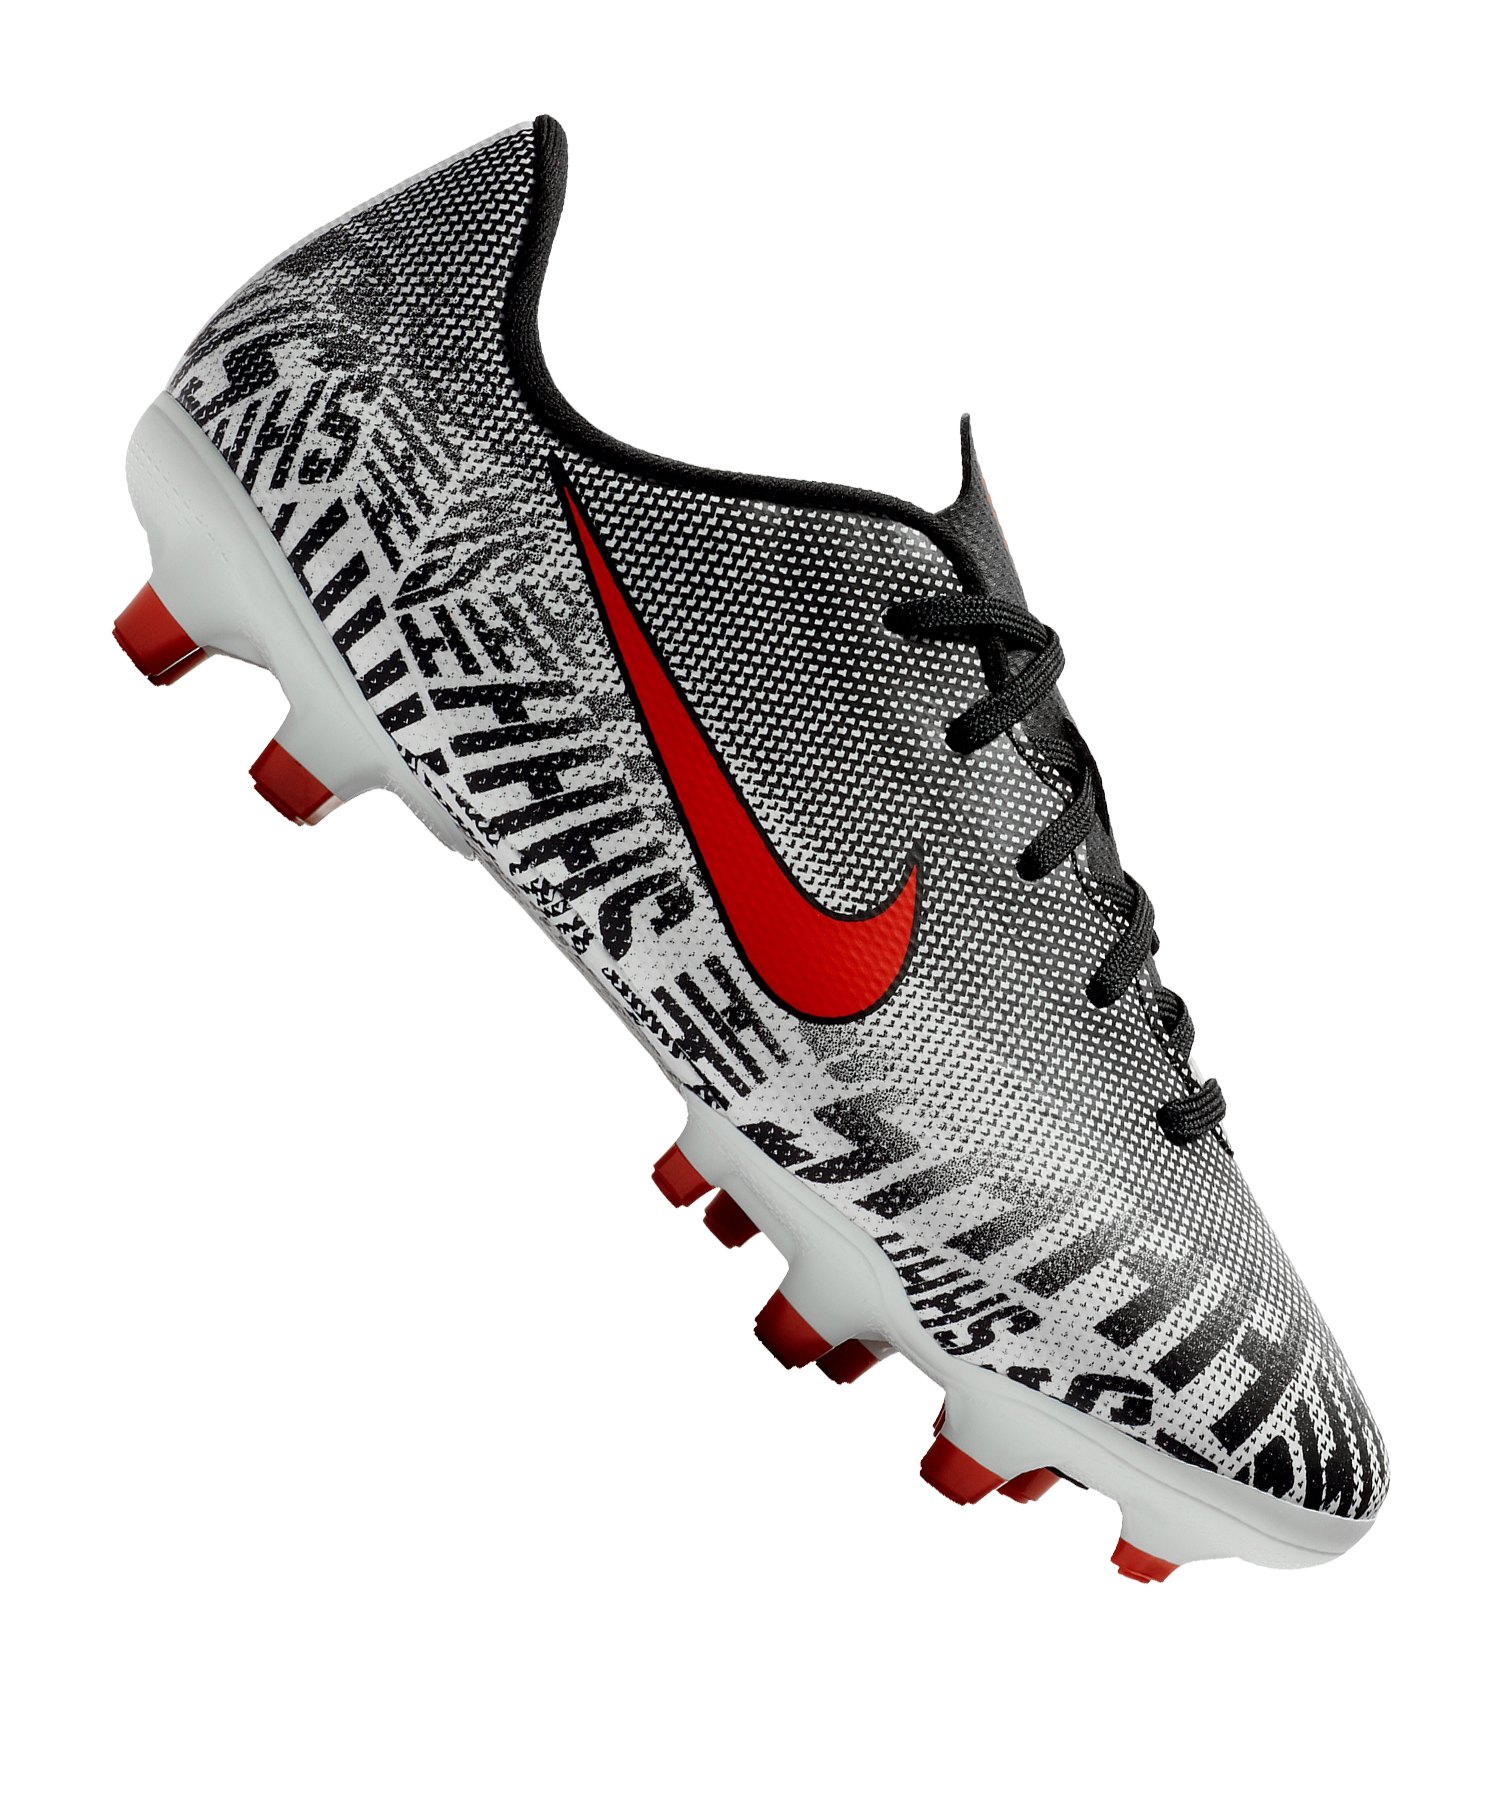 factory authentic 7ec45 1bc53 Nike Mercurial Vapor XII Academy NJR MG PS Kids |Kinderschuh ...